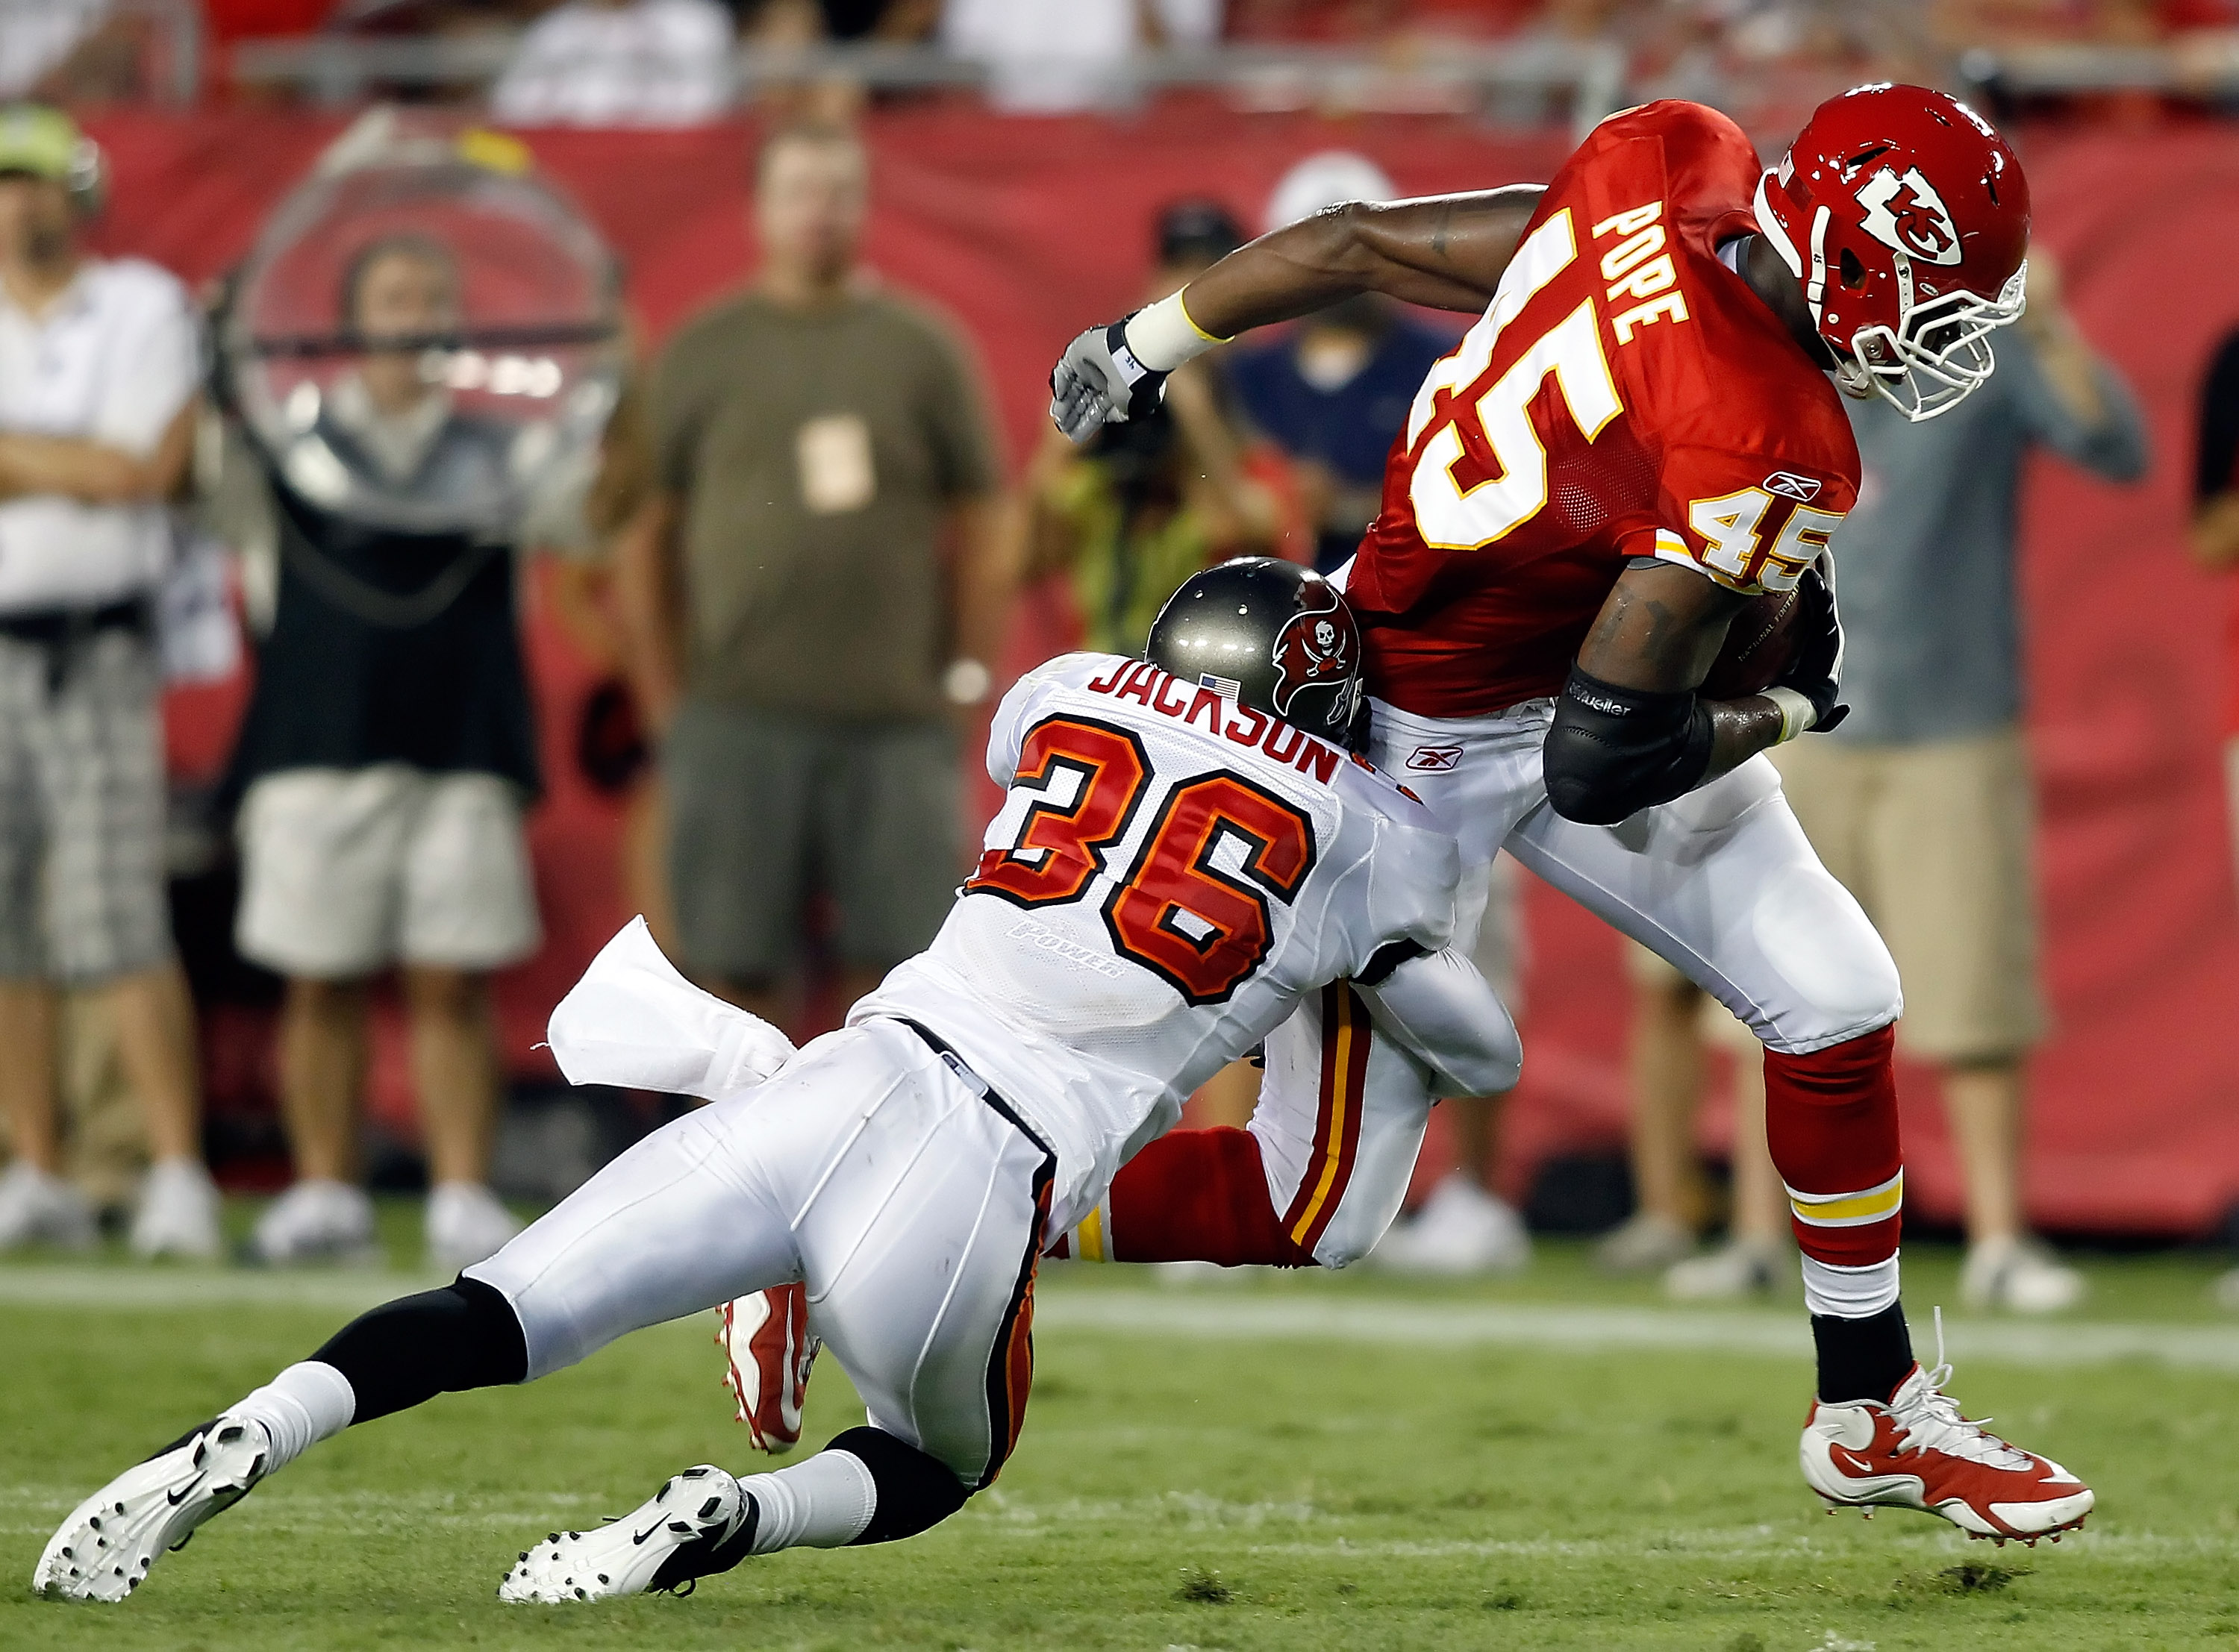 TAMPA, FL - AUGUST 21:  Safety Tanard Jackson #36 of the Tampa Bay Buccaneers tackles tight end Leonard Pope #45 of the Kansas City Chiefs during a preseason game at Raymond James Stadium on August 21, 2010 in Tampa, Florida.  (Photo by J. Meric/Getty Ima